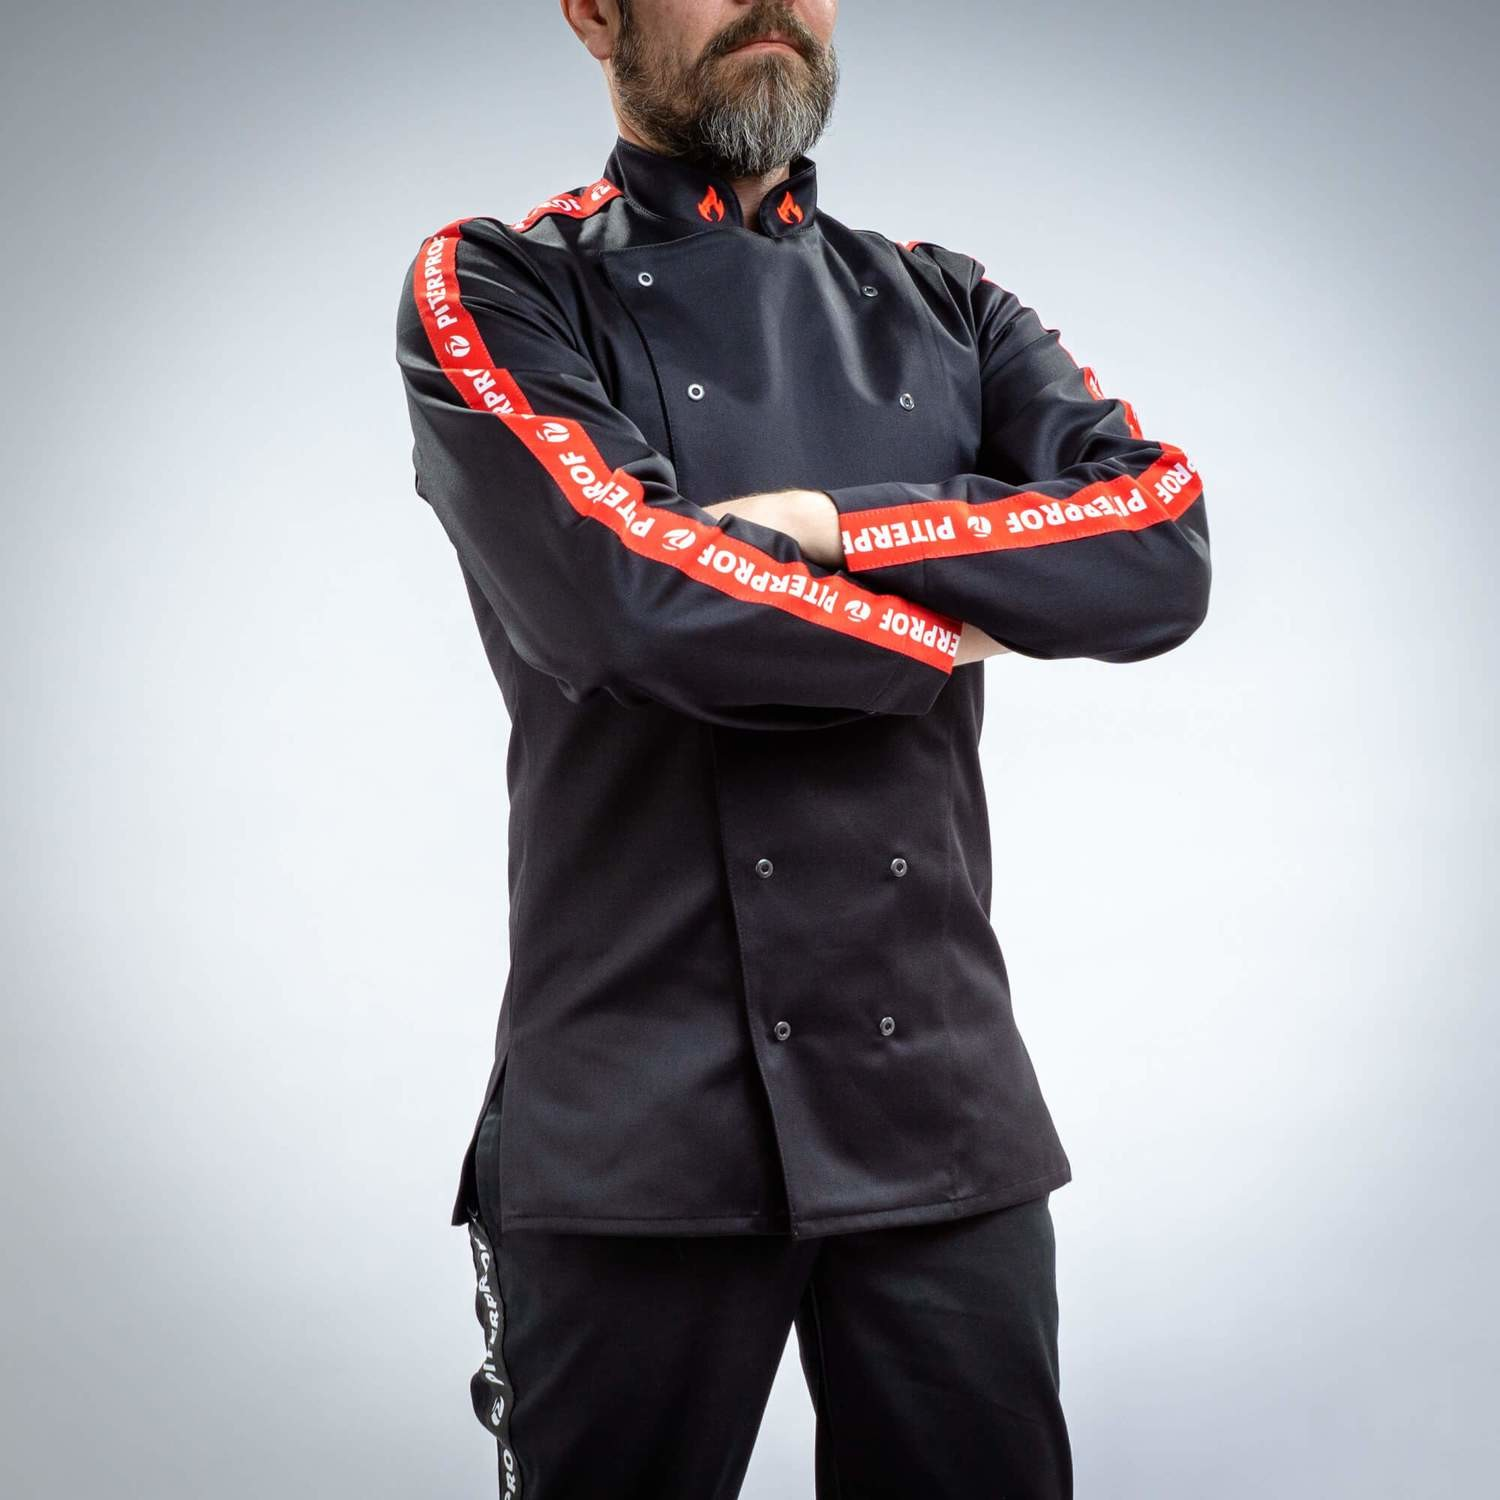 270ABA - MEN'S CHEF JACKET